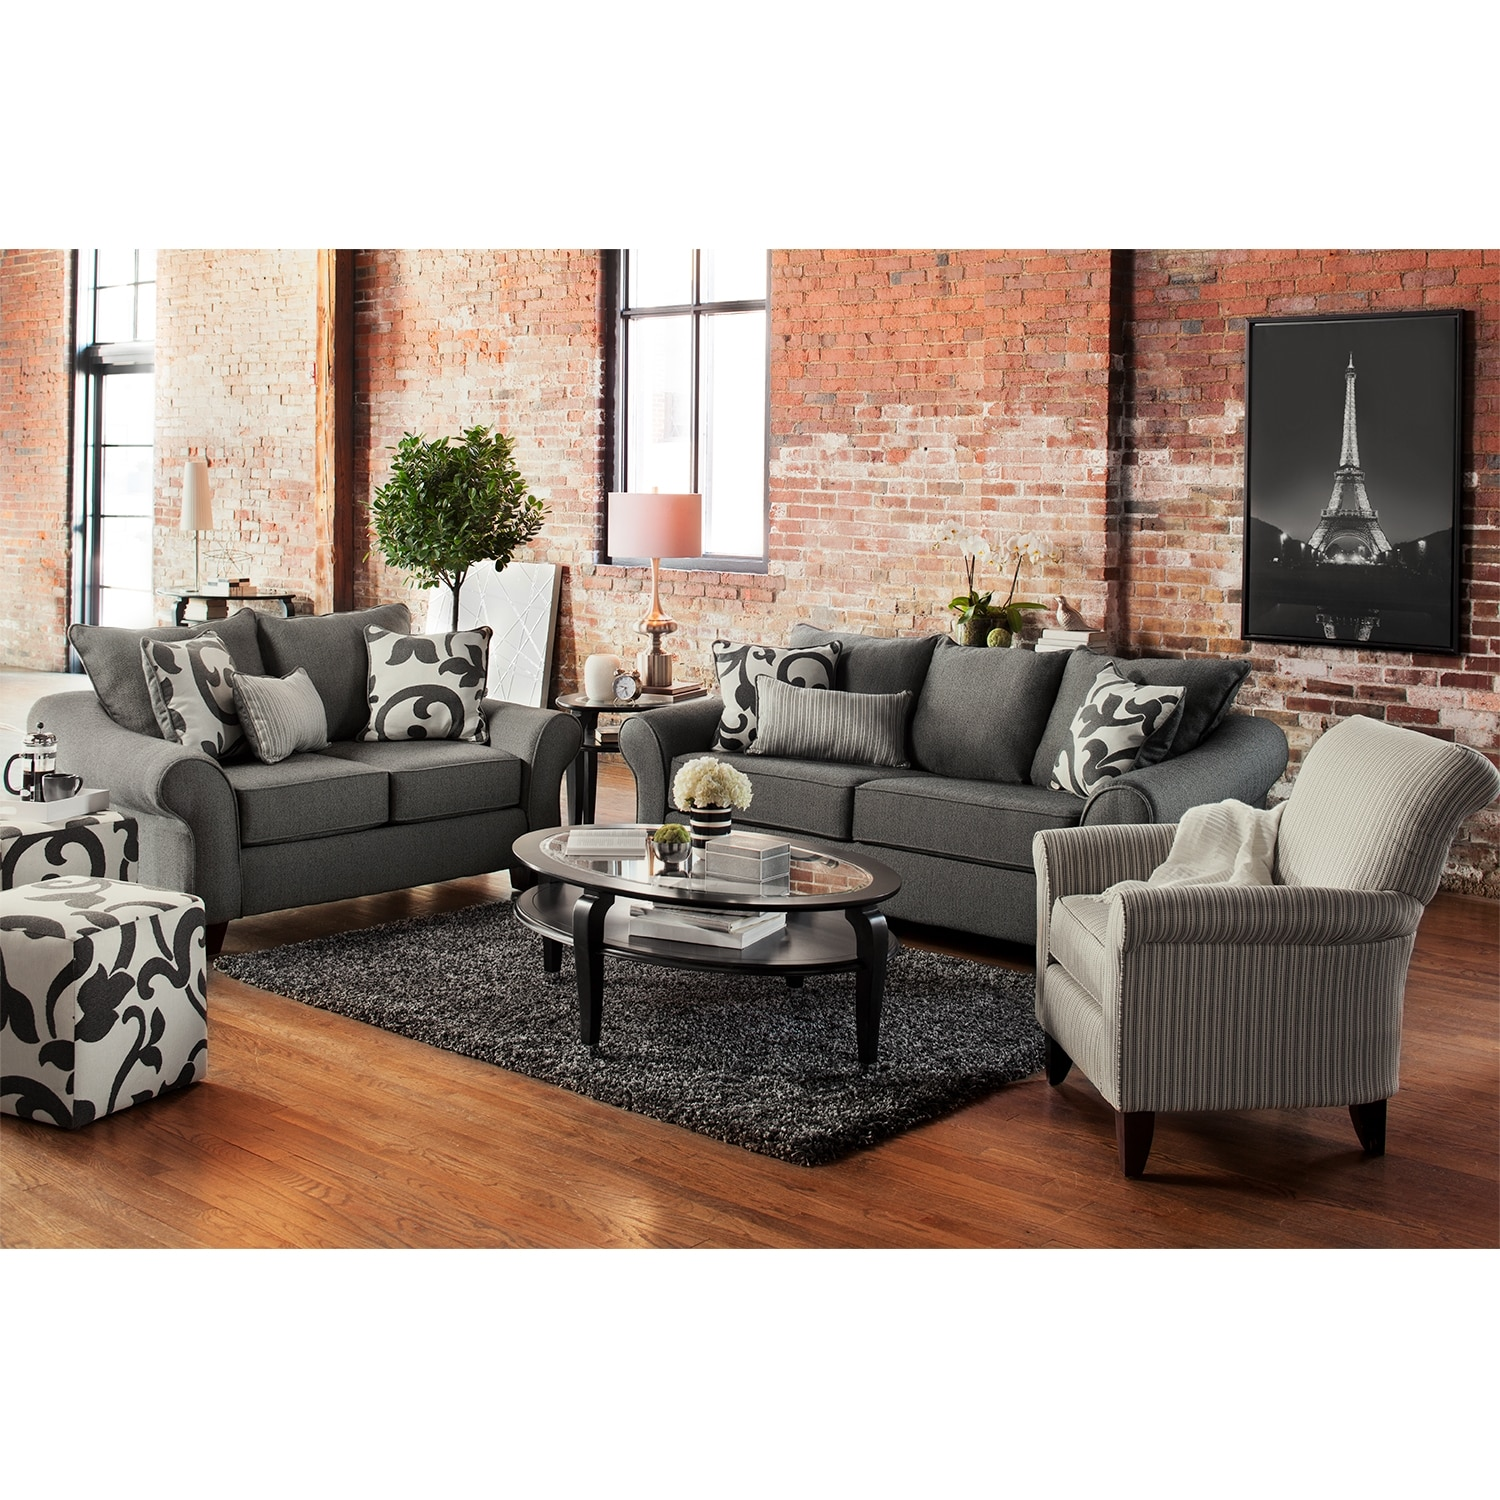 Colette gray sofa value city furniture for Couch living room furniture